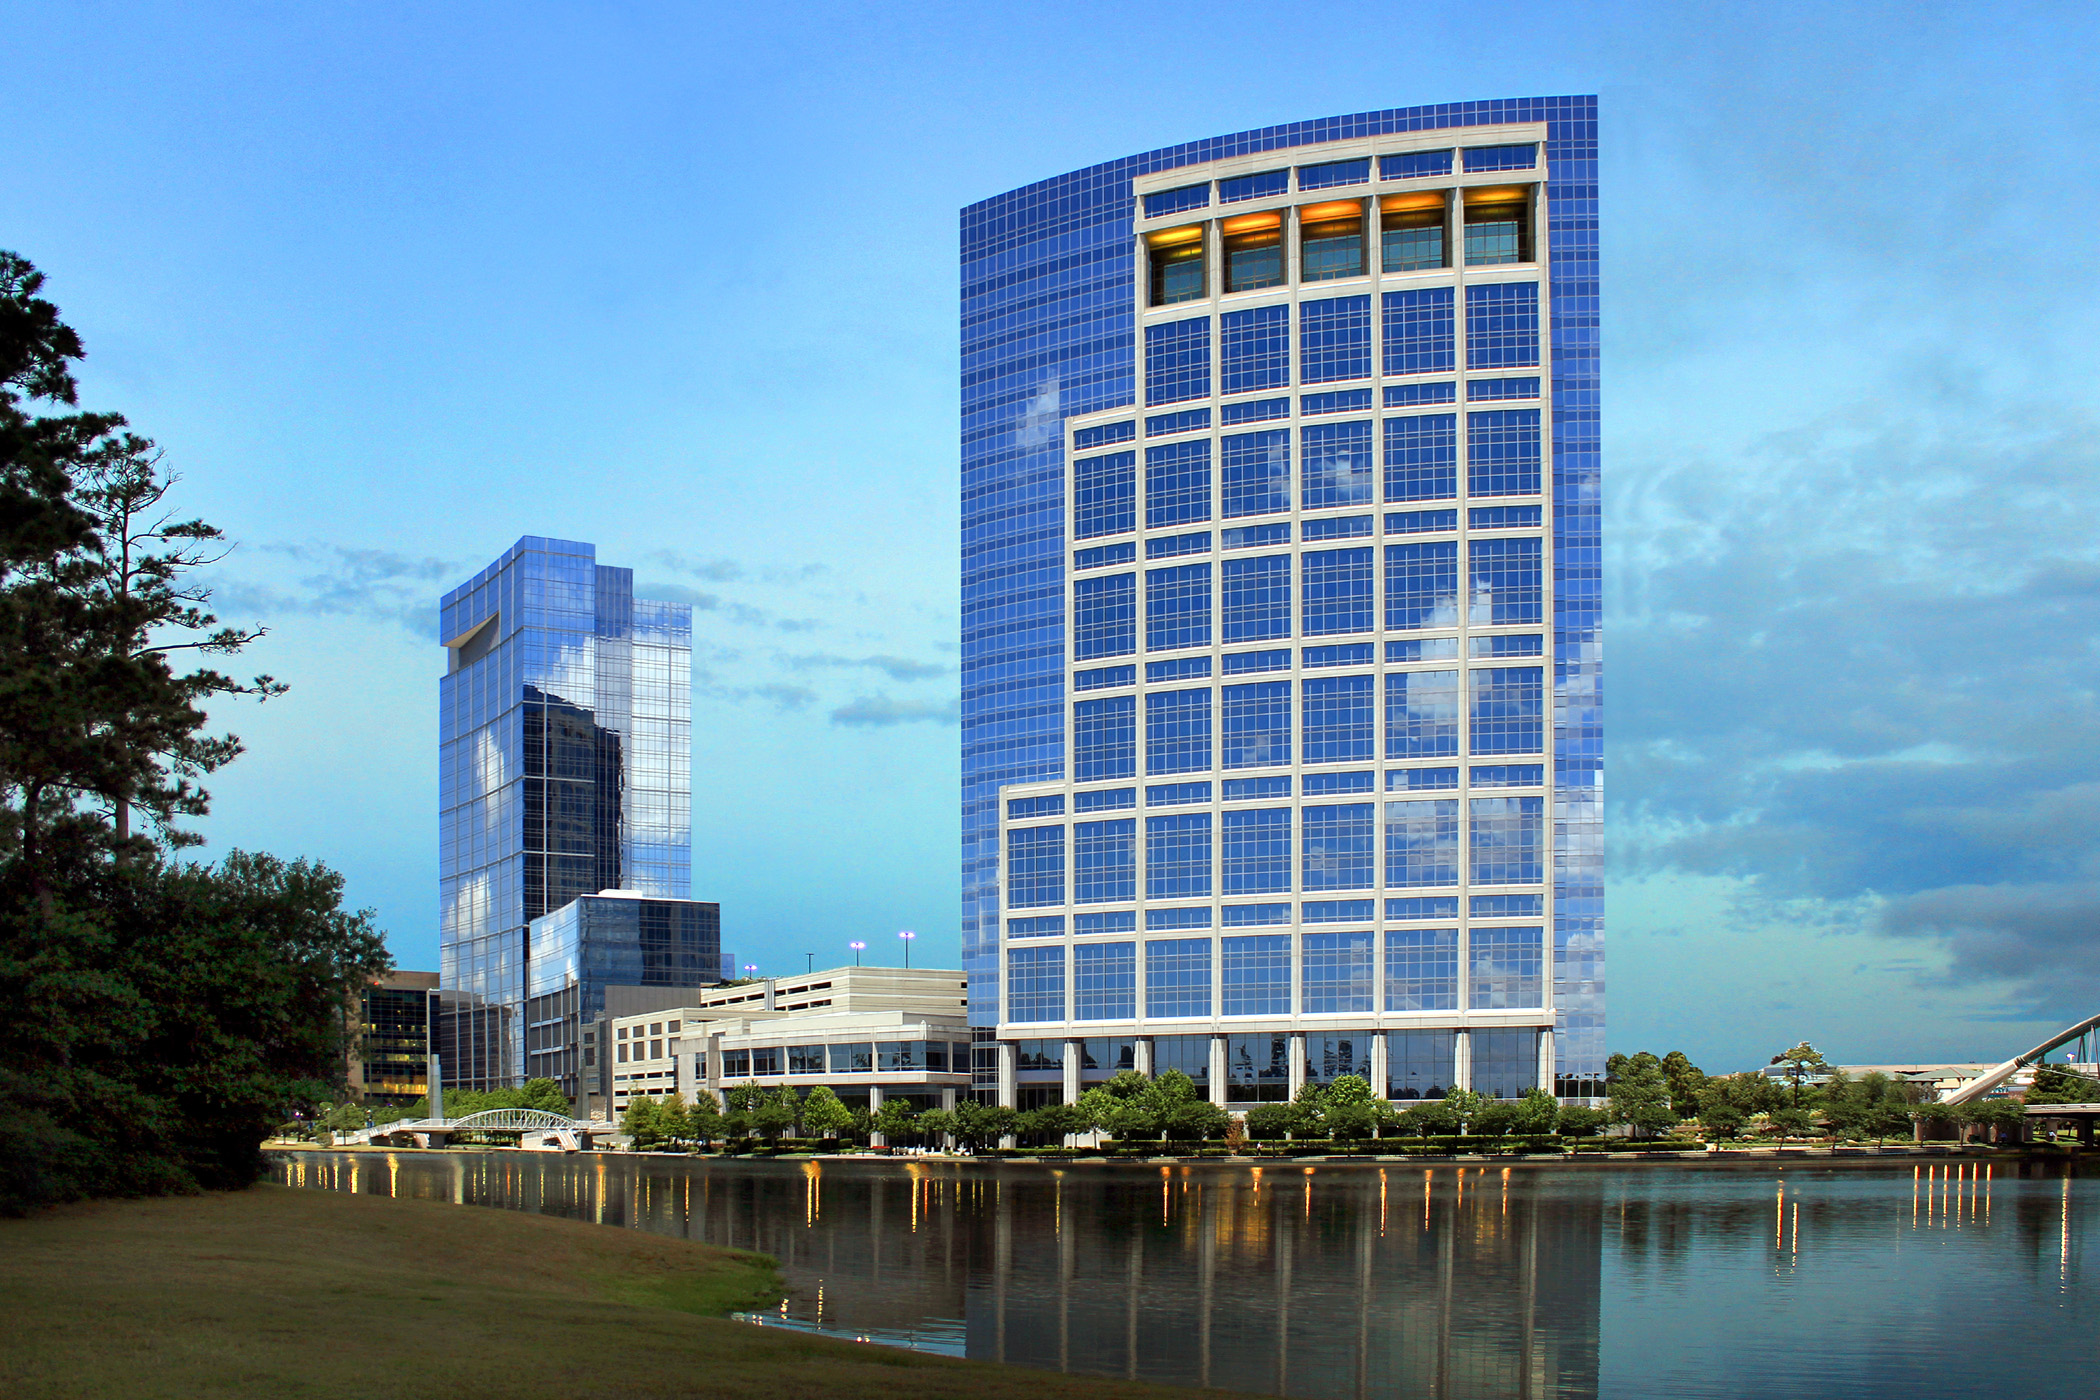 A gleaming office building reflected on the surface of a river